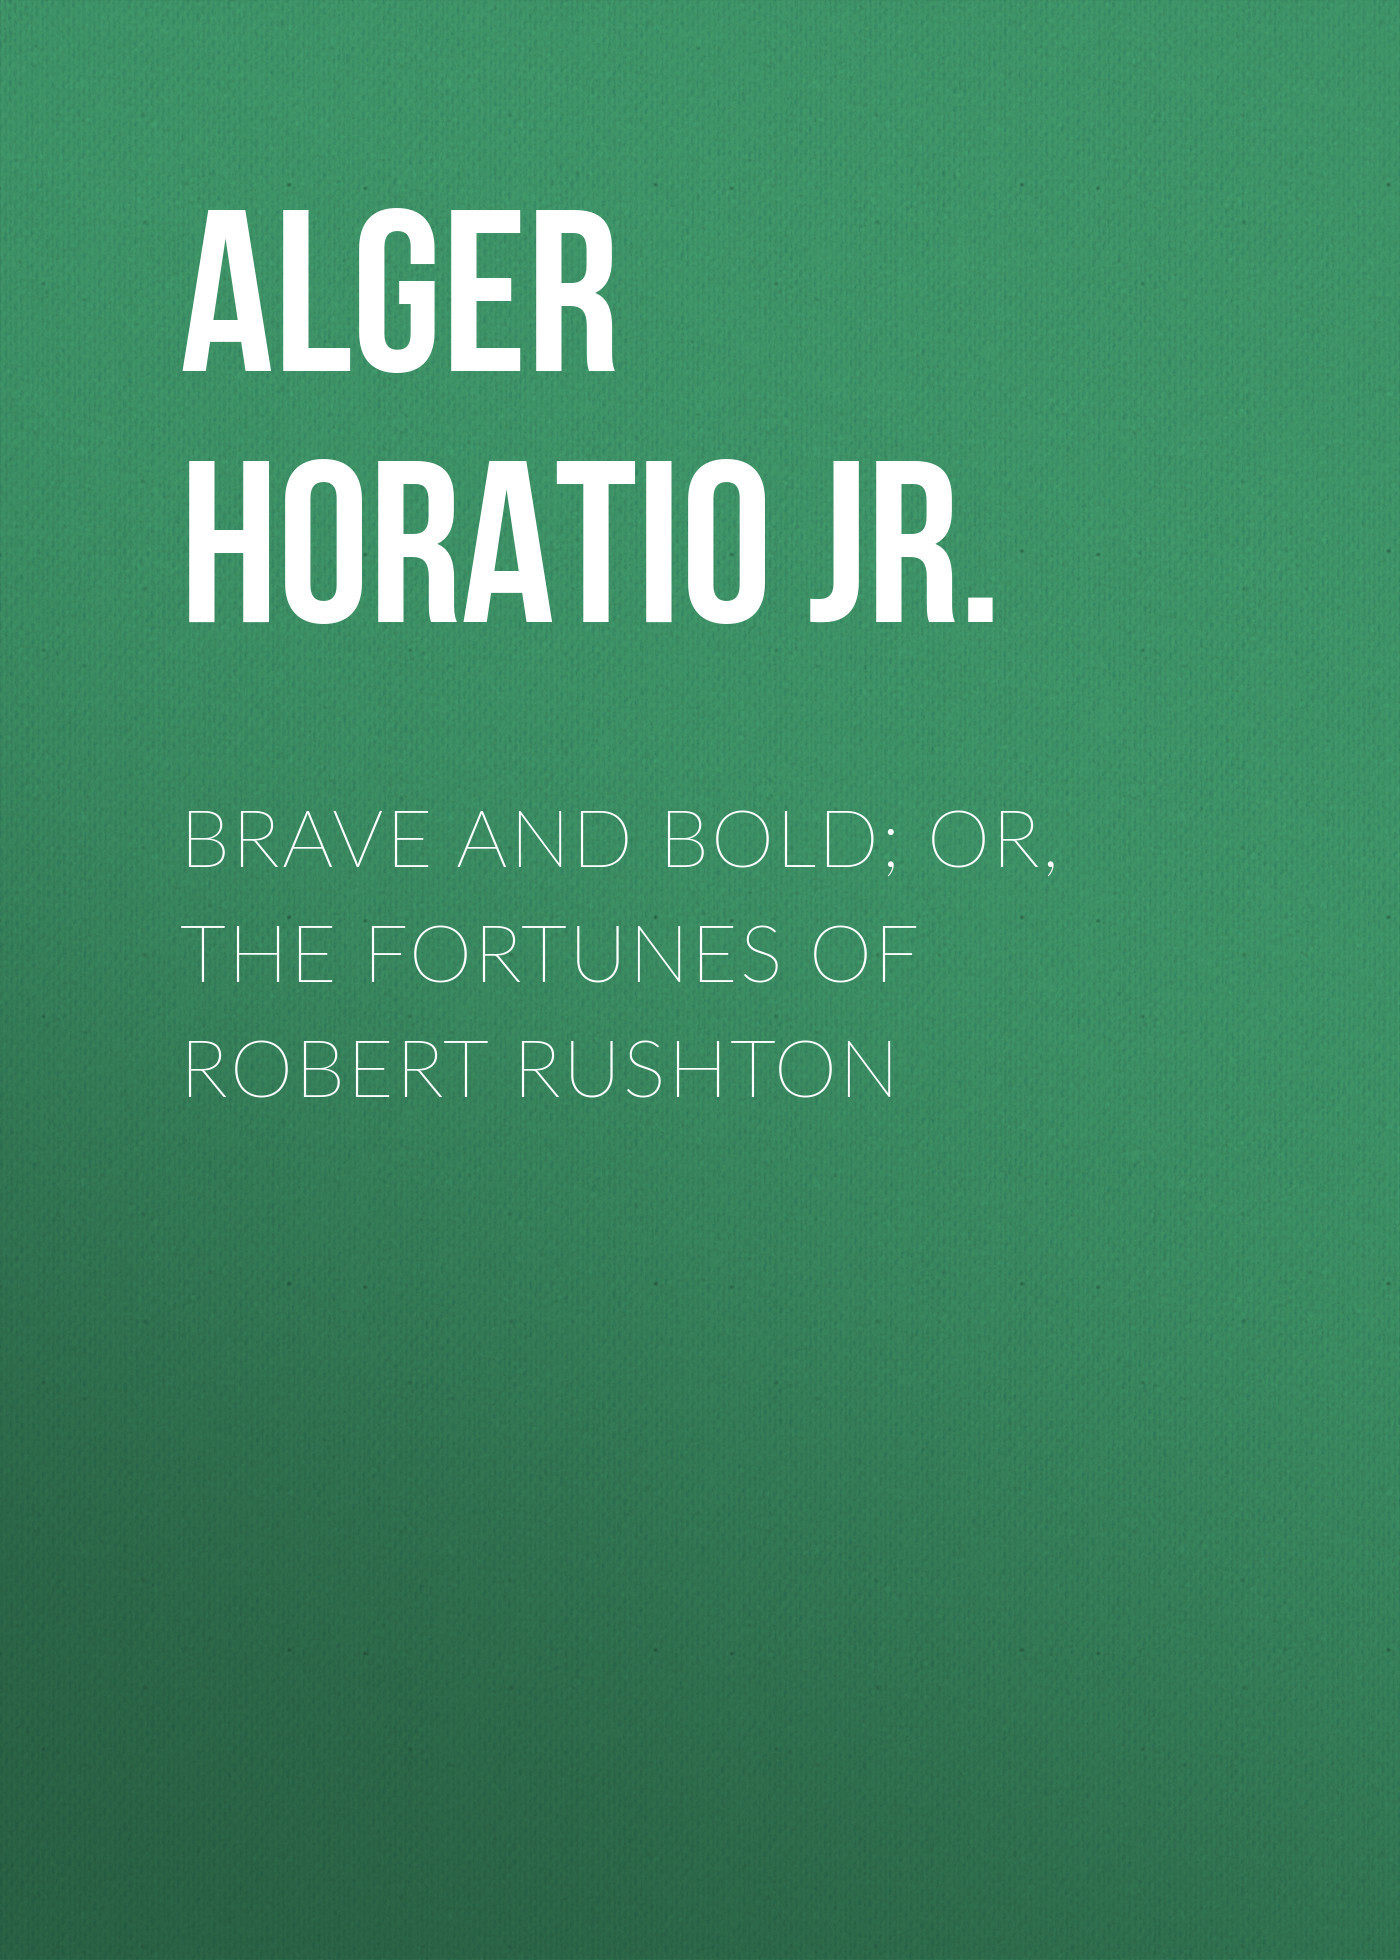 Alger Horatio Jr. Brave and Bold; Or, The Fortunes of Robert Rushton